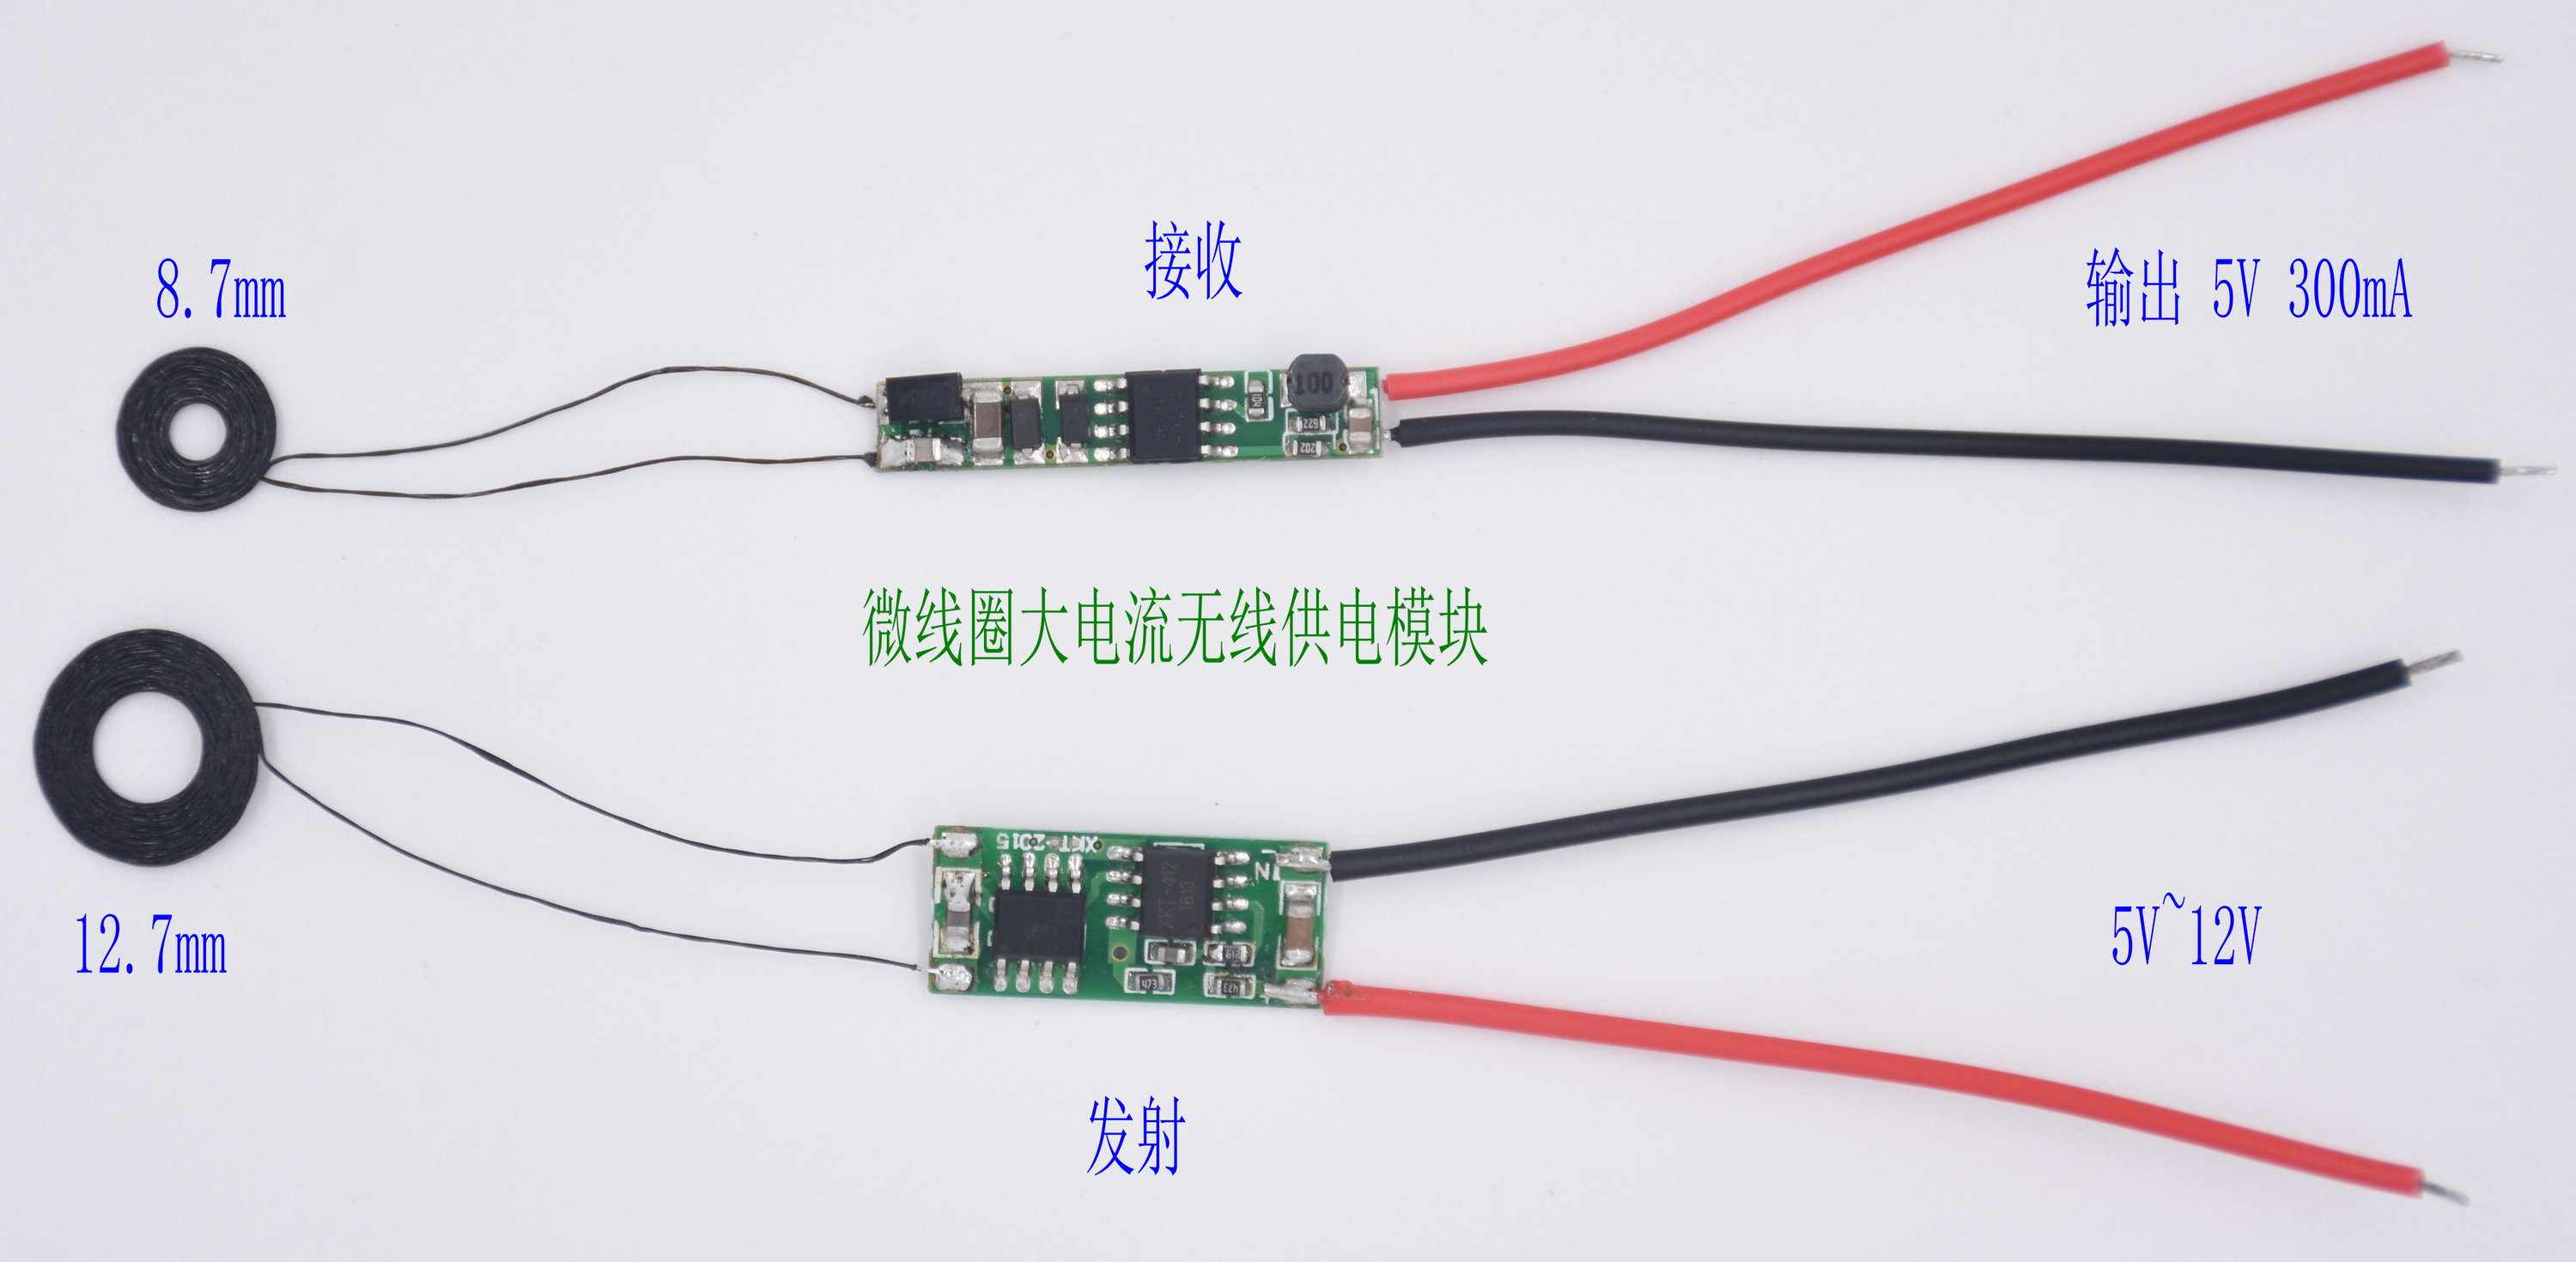 87mm Micro Coil 300ma High Current Wireless Charging Power Supply Circuit Module In Air Conditioner Parts From Home Appliances On Alibaba Group